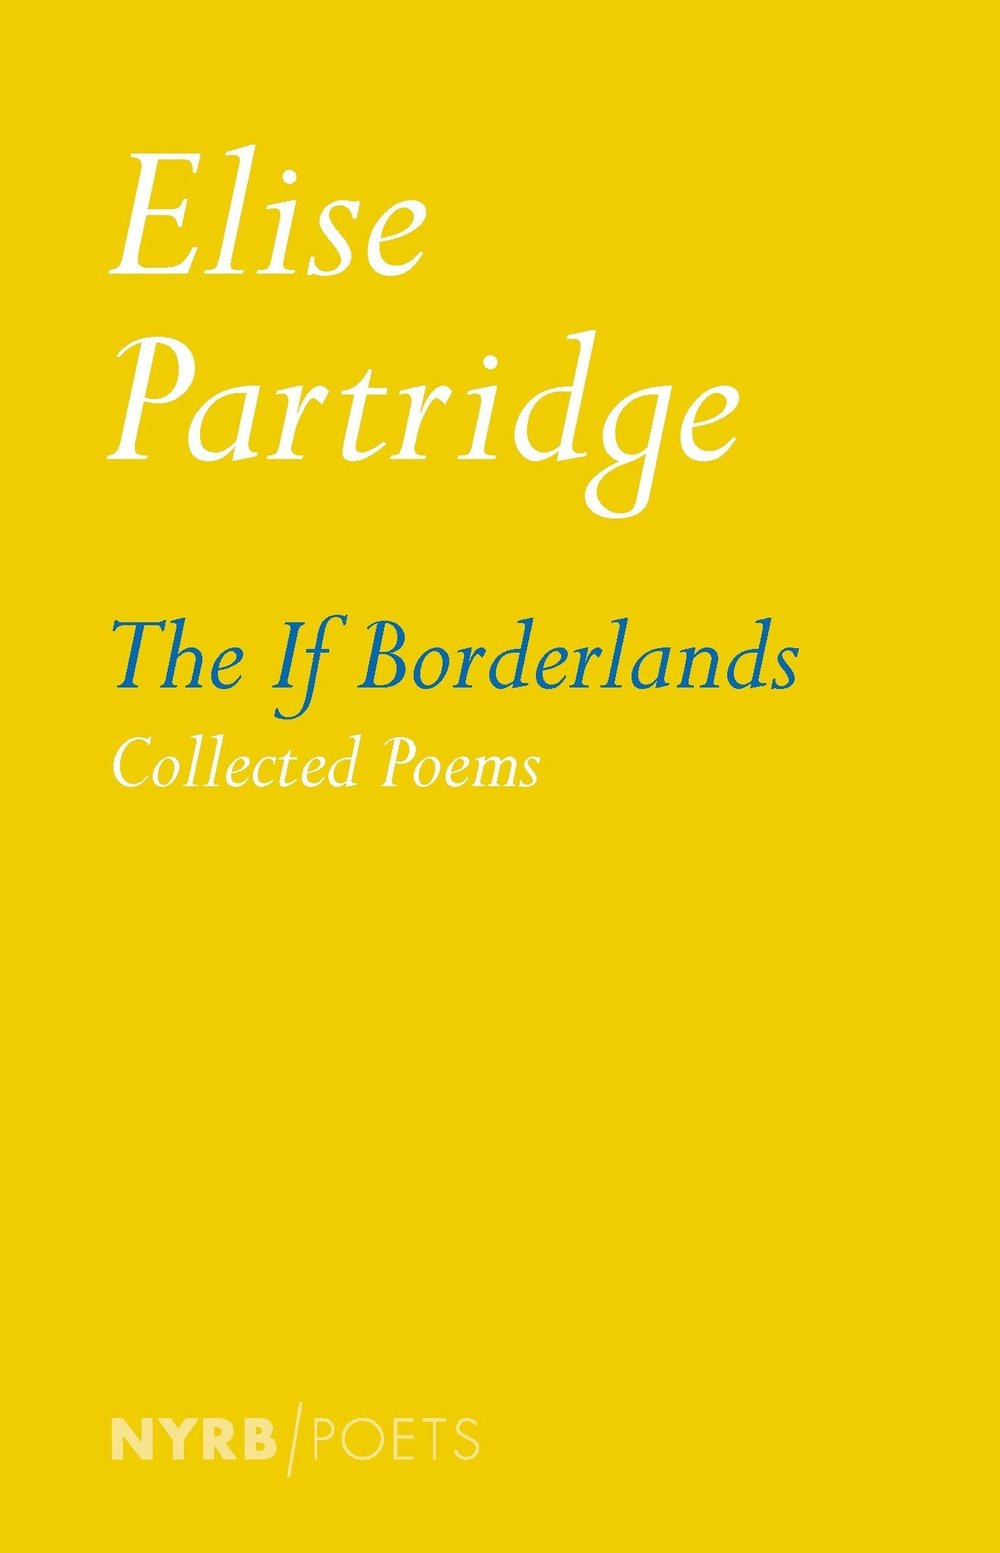 Partridge_The_If_Borderlands_2048x2048.jpg